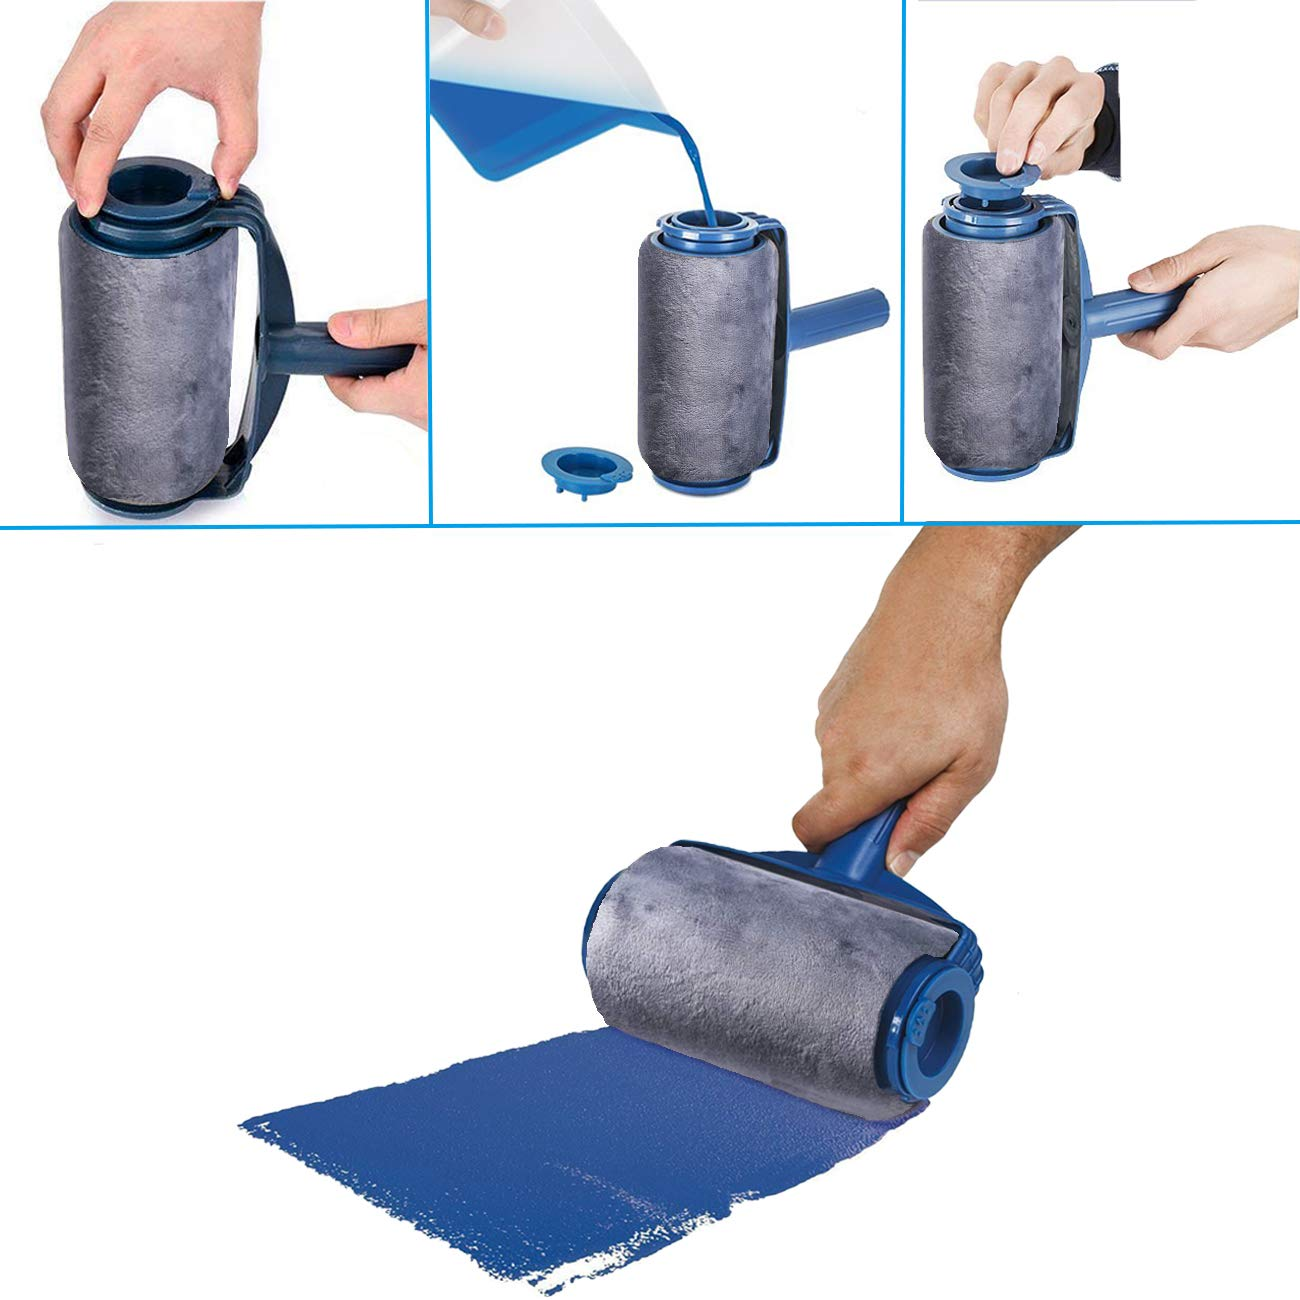 Multifunctional Paint Roller BlitzSo House Paint Roller Brush Kit with Extendable Rod Wall Painting Brush Set for House,Office 2 Wear Resistant Paint Runner Pro Silver Gray